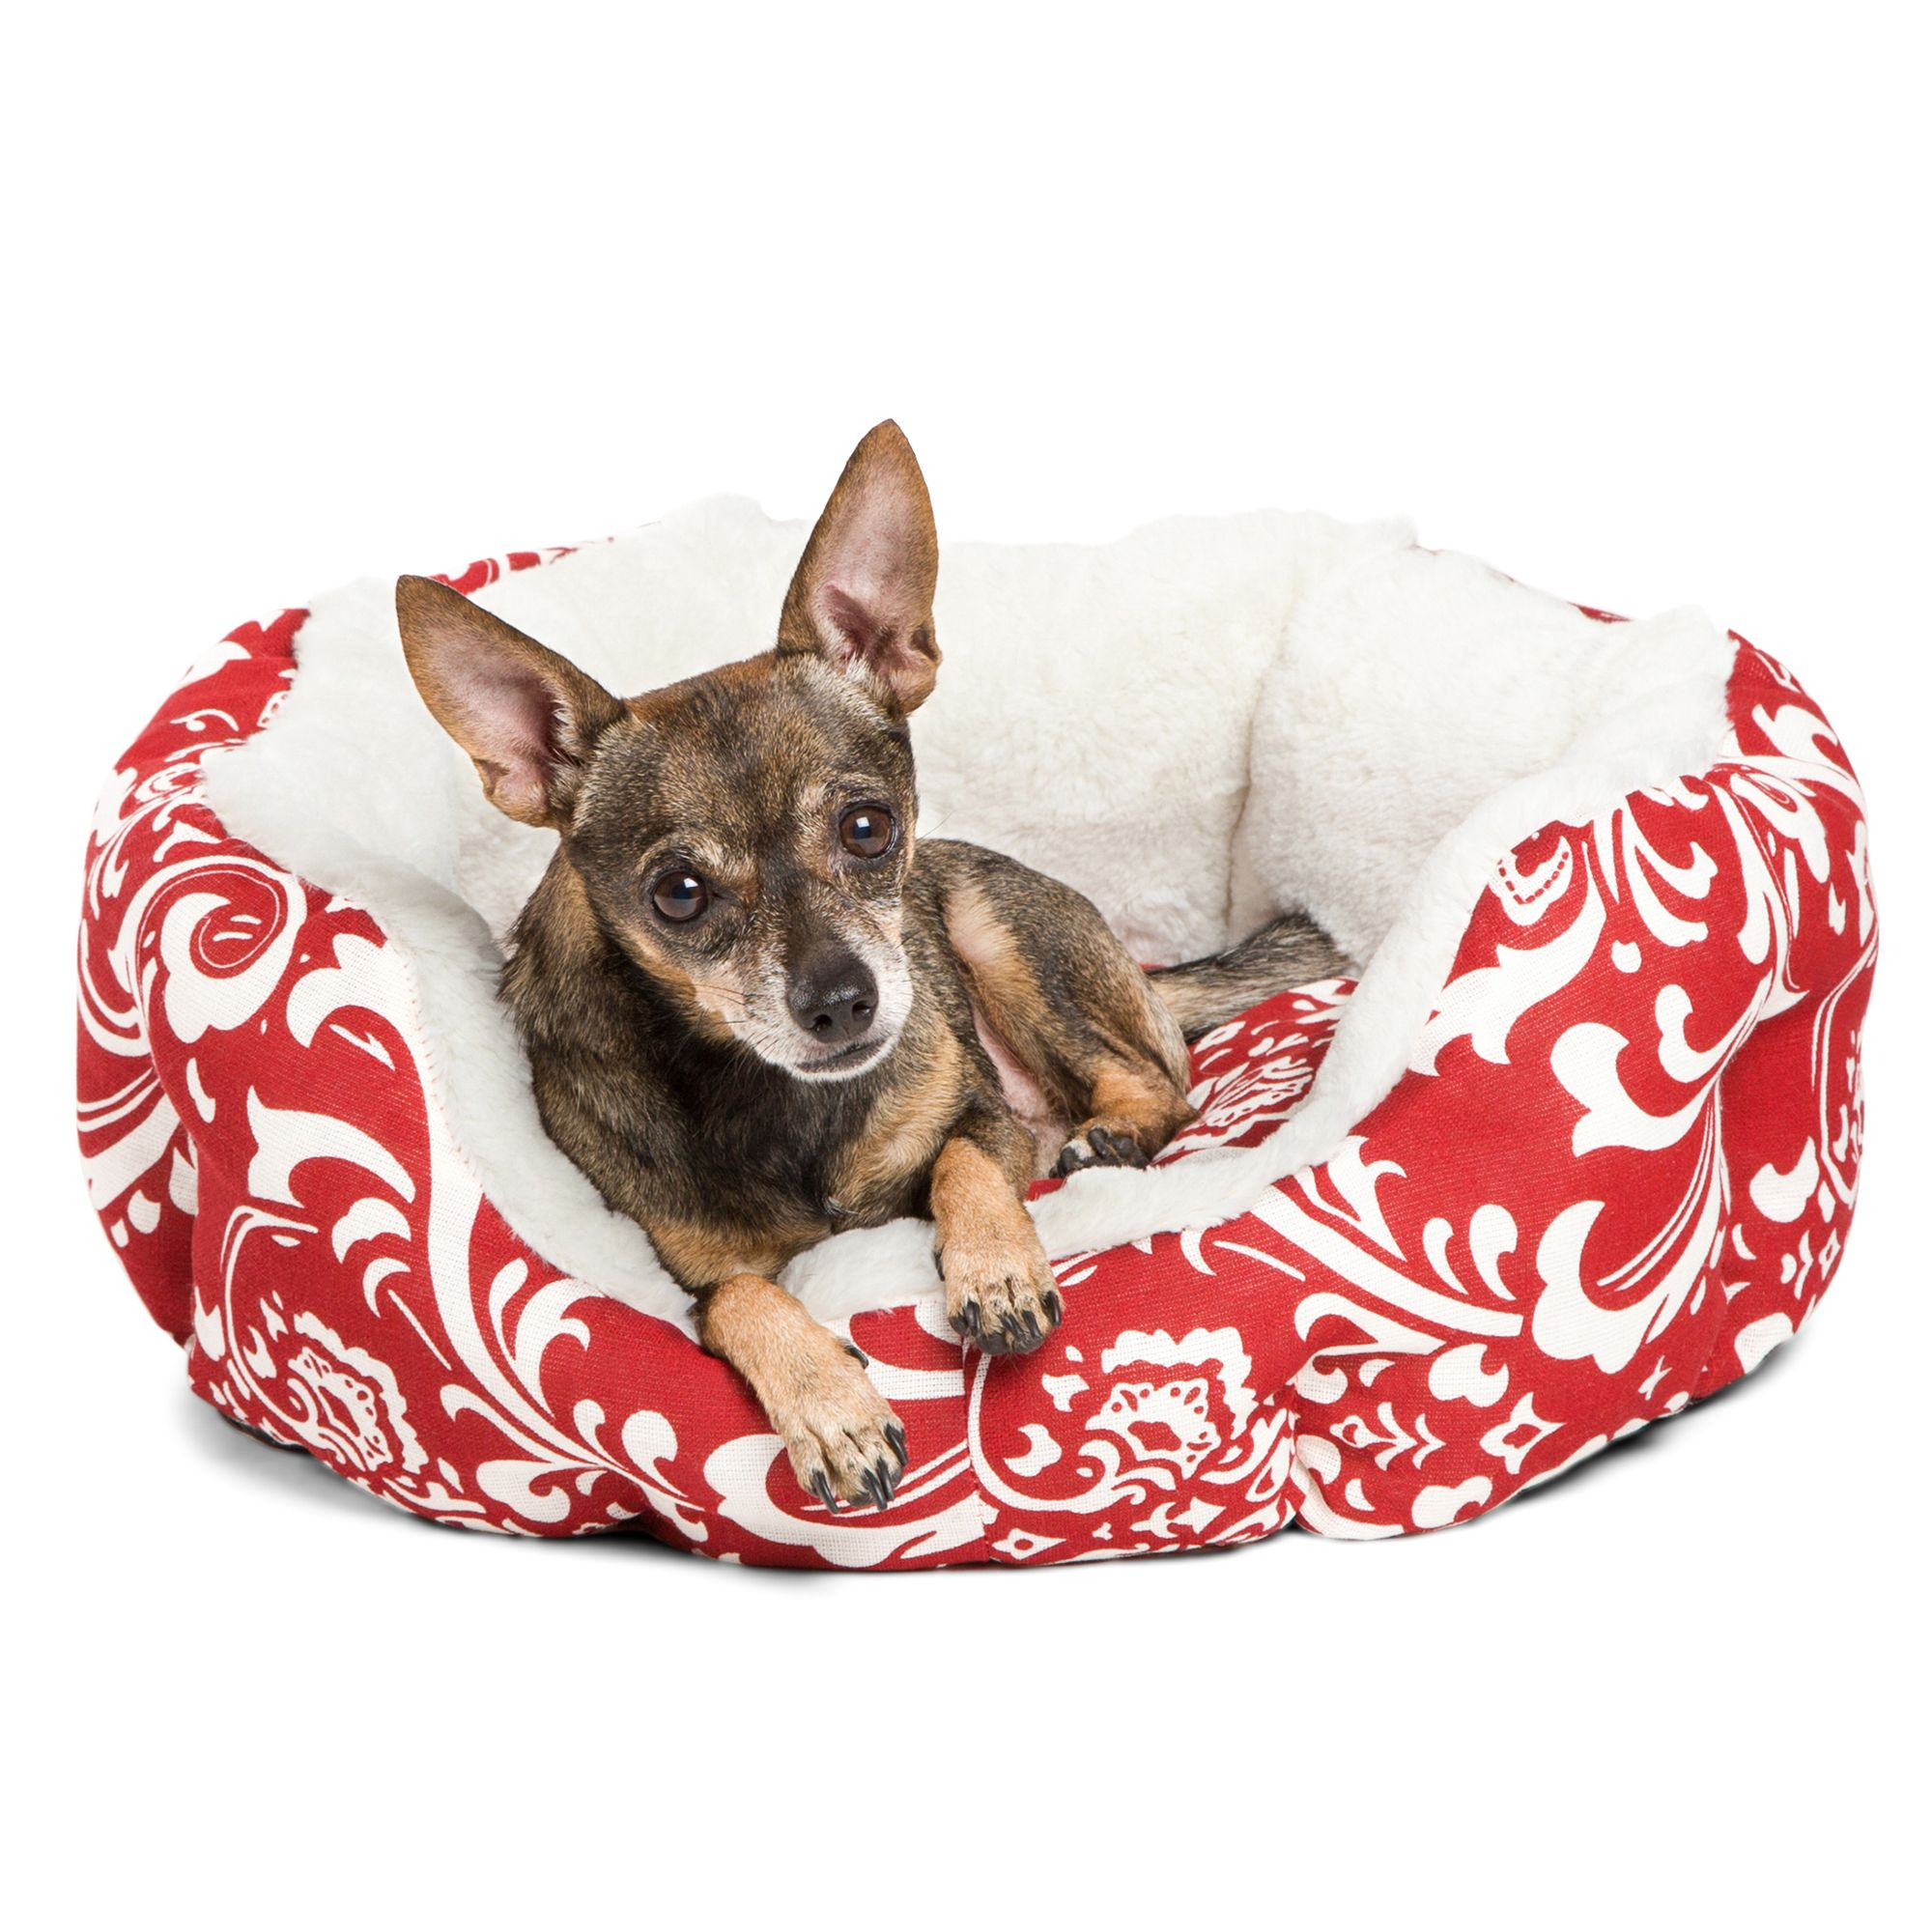 Best Friends By Sheri Cuddler Pet Bed Size 16l X 16w X 6h Red